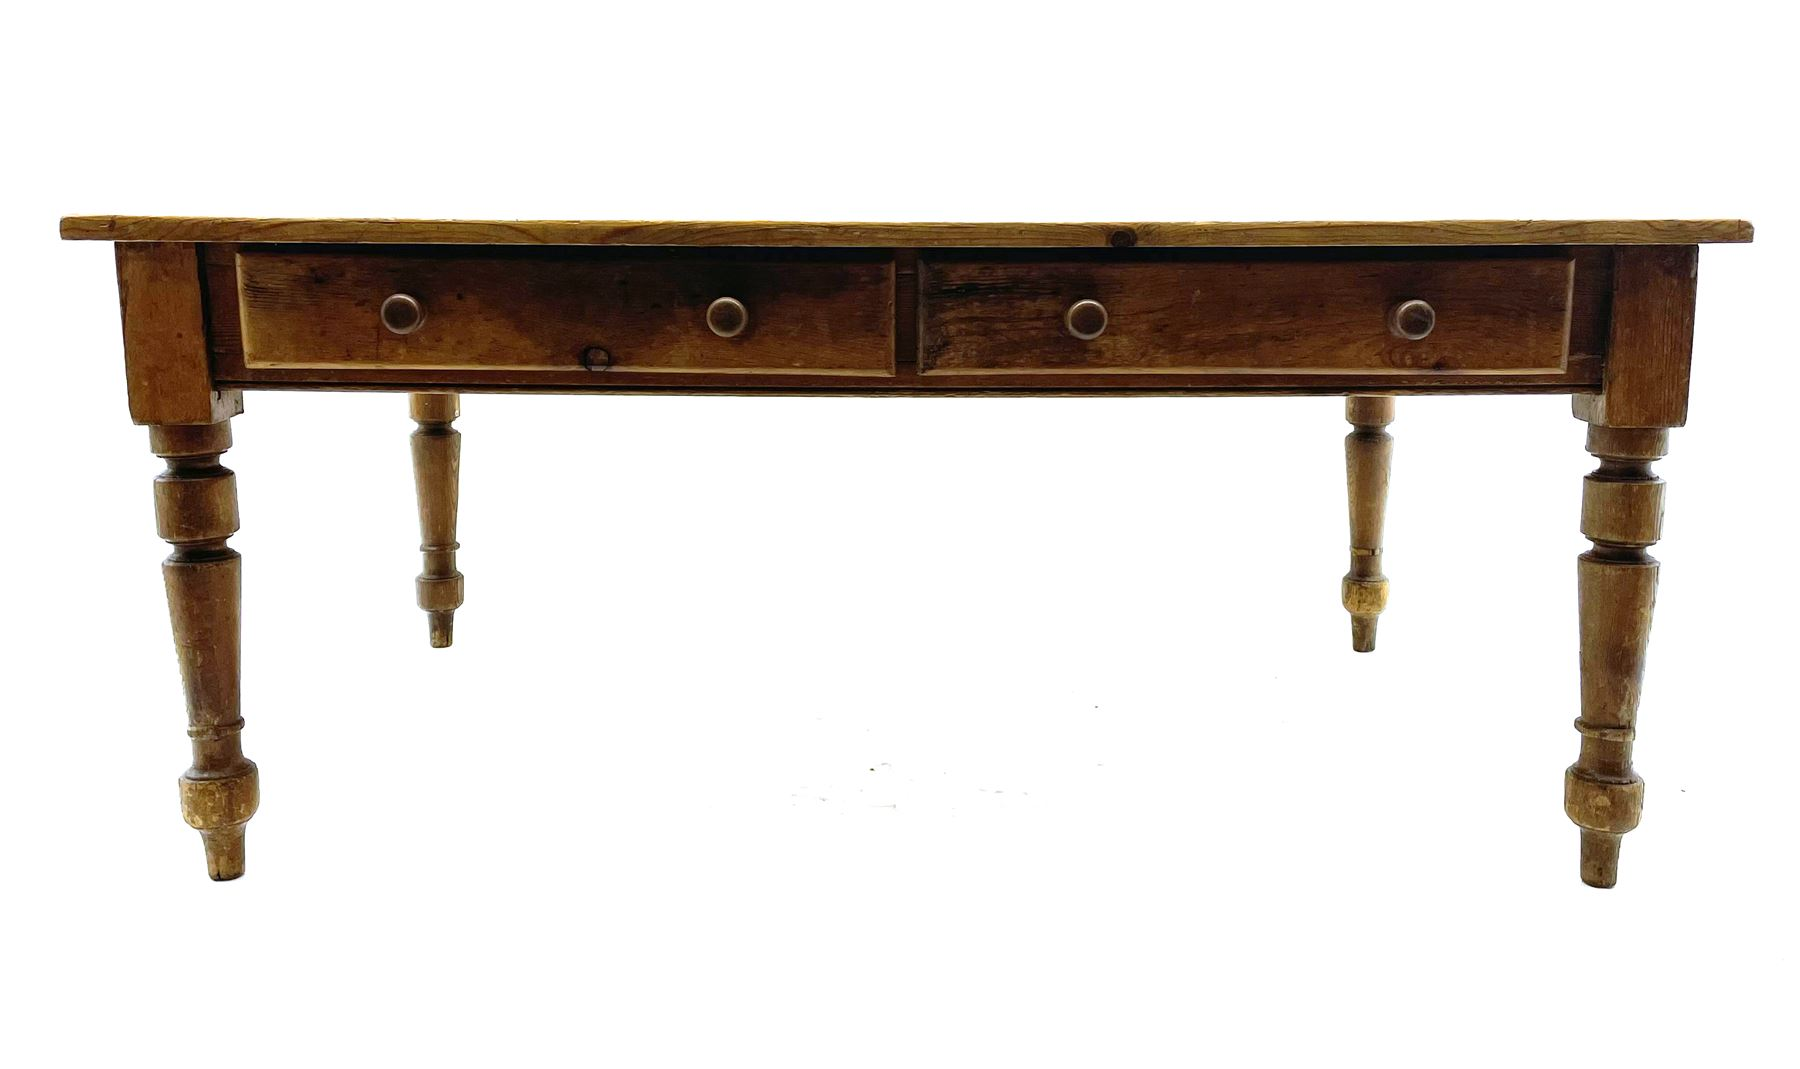 19th century and later pine farmhouse style kitchen dining table - Image 2 of 4